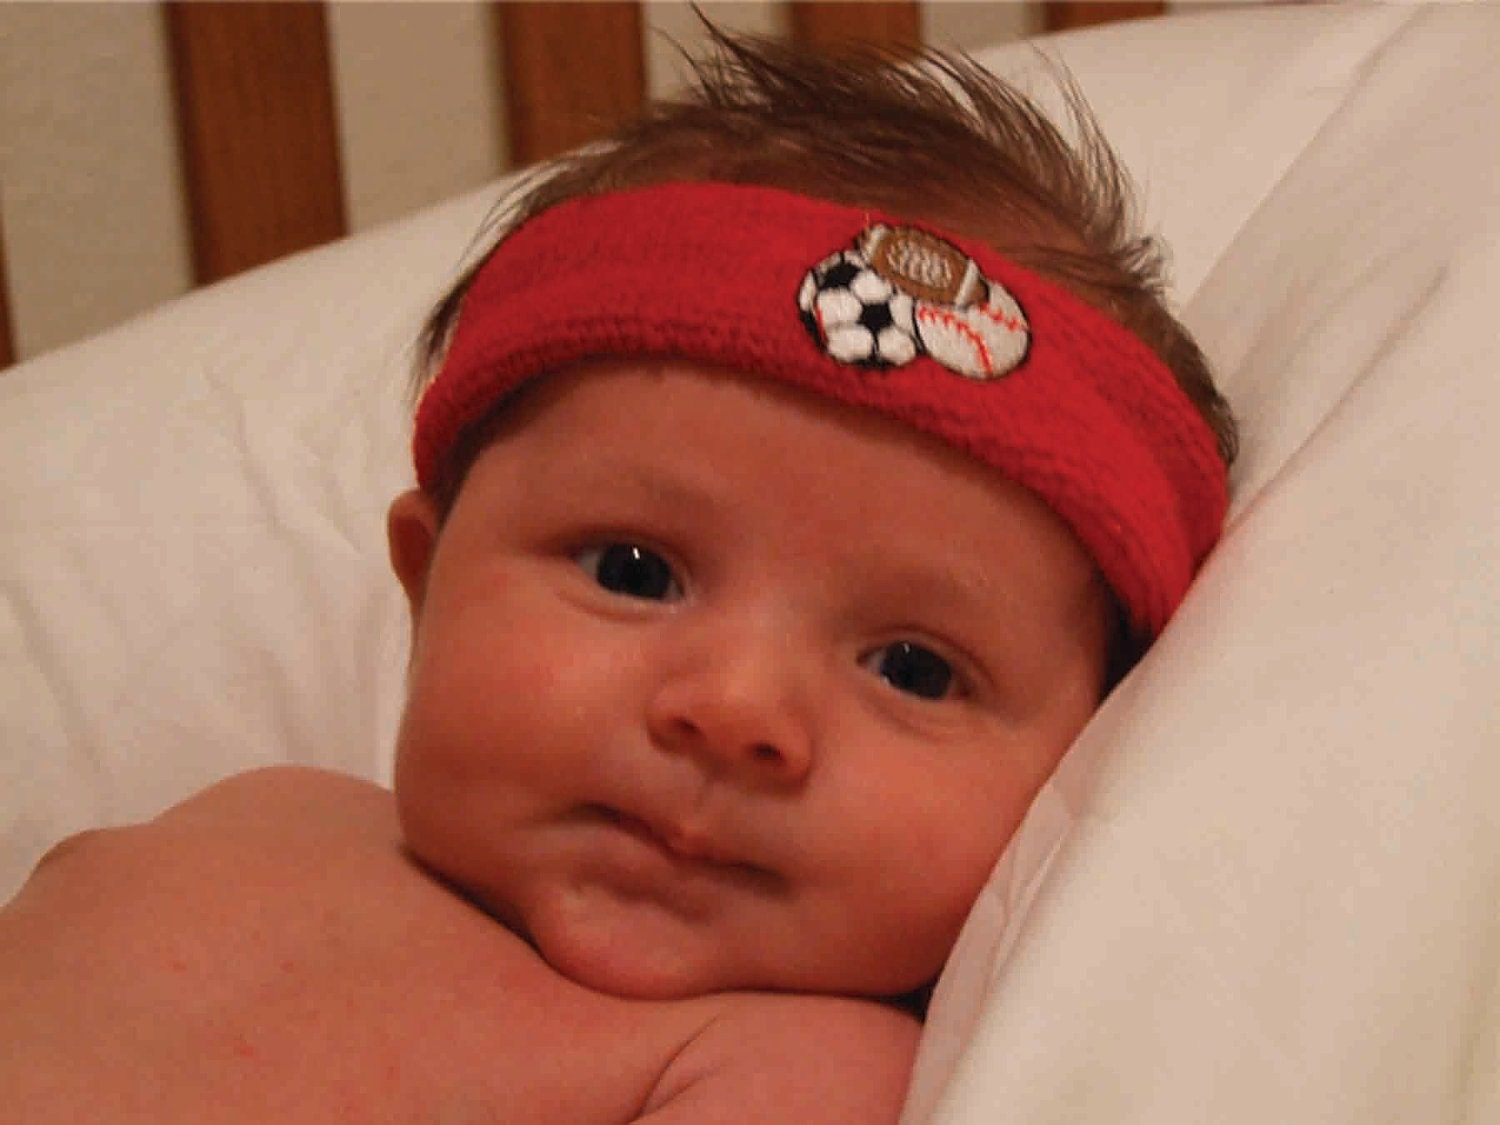 You searched for: baby boy headband! Etsy is the home to thousands of handmade, vintage, and one-of-a-kind products and gifts related to your search. No matter what you're looking for or where you are in the world, our global marketplace of sellers can help you .